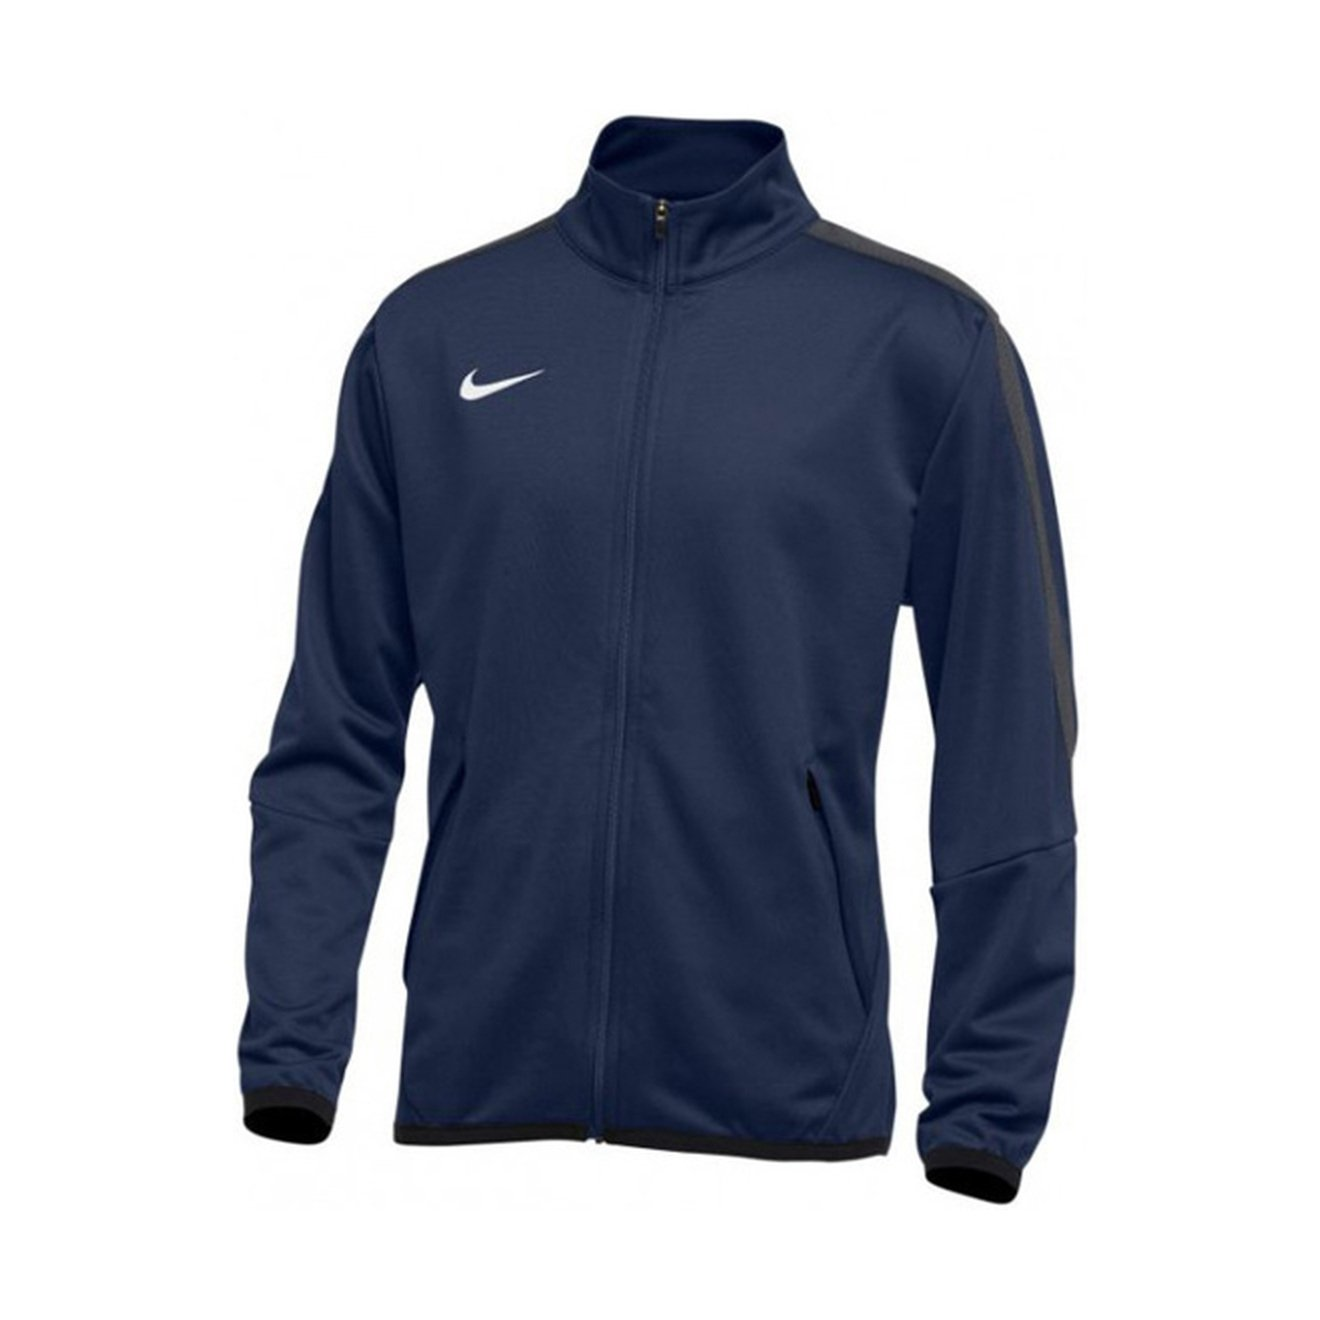 NIKE Epic Training Jacket Youth Navy Youth Large